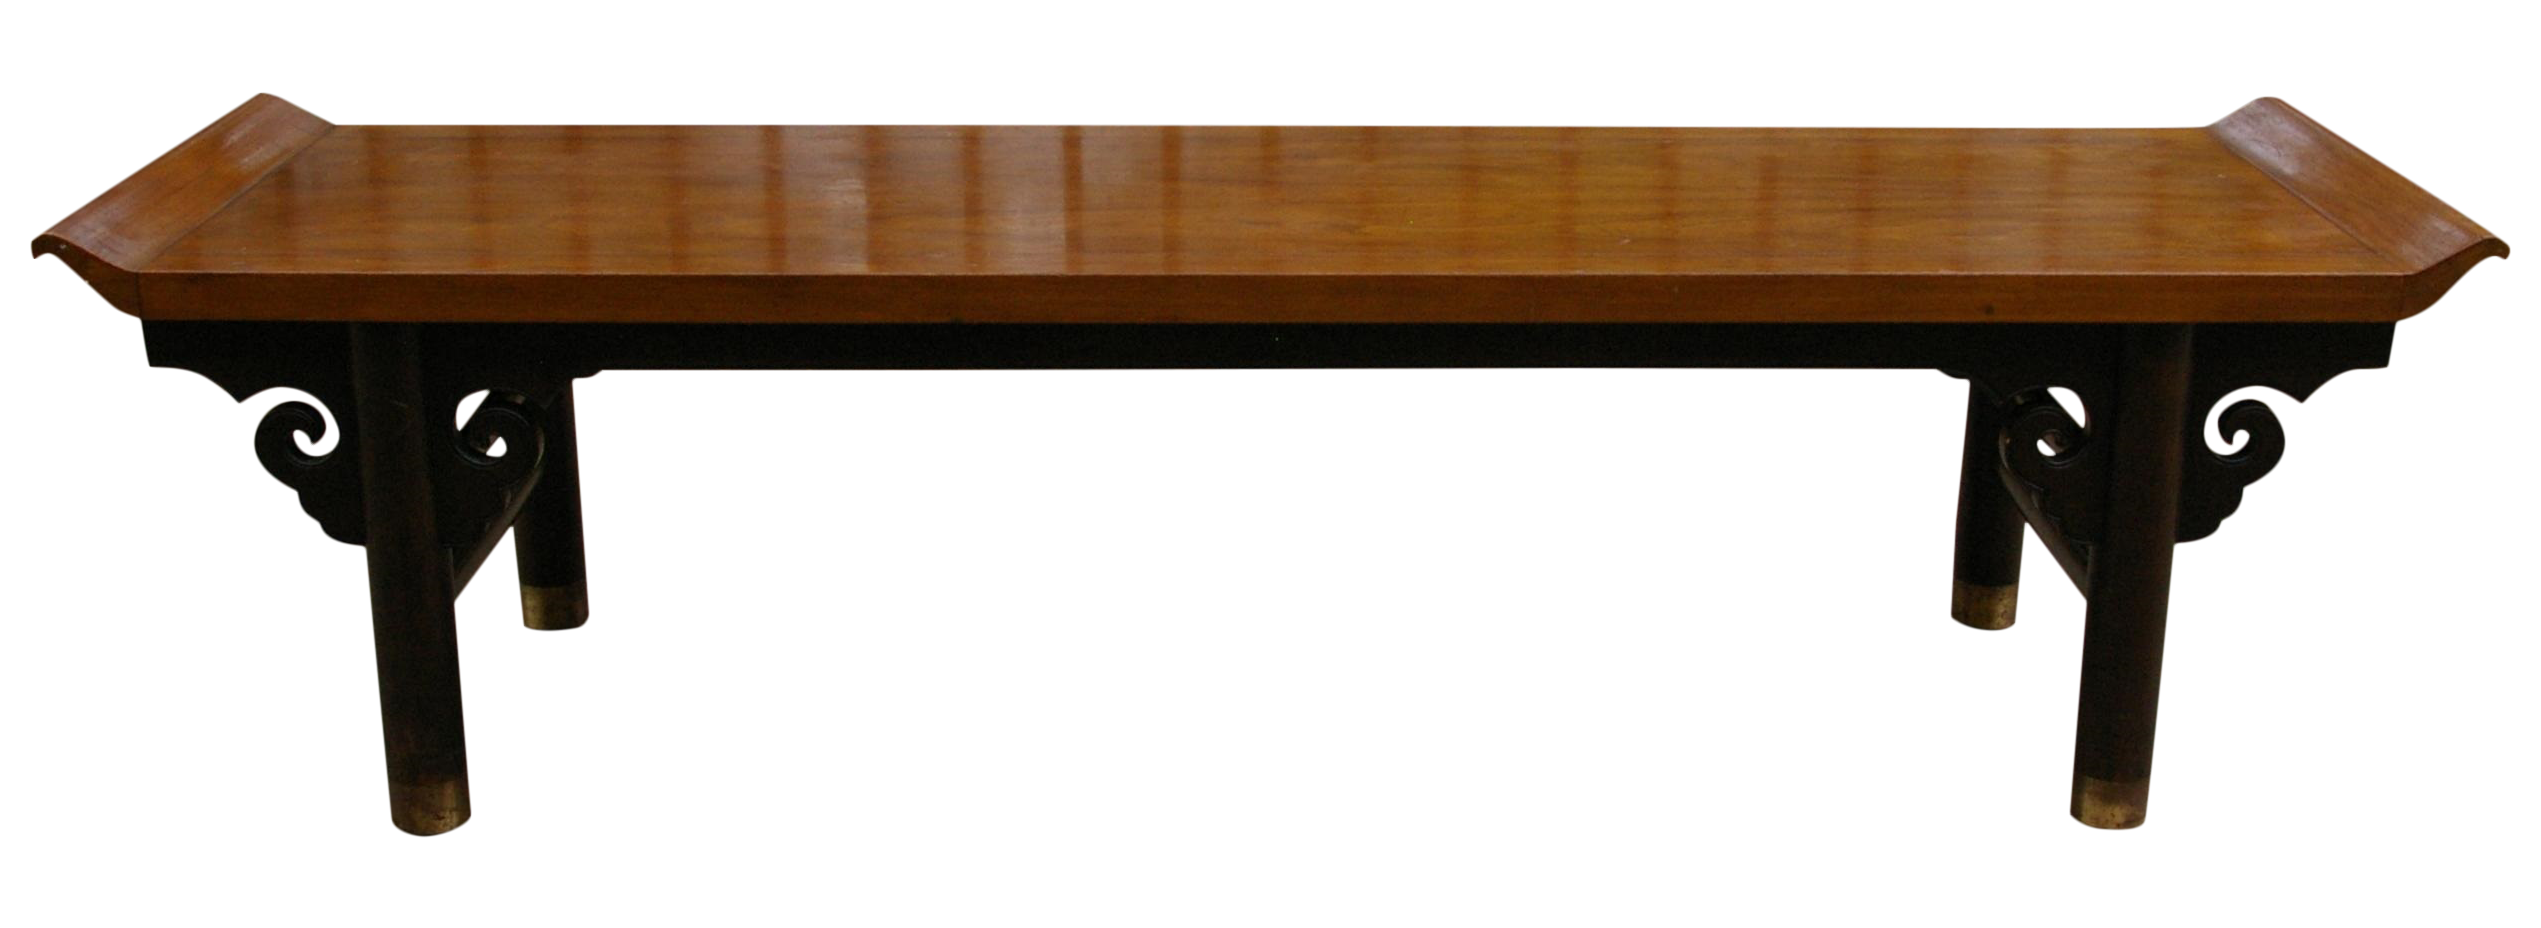 Baker Furniture Midcentury Japanese Low Table Chairish : baker furniture midcentury japanese low table 1204 from www.chairish.com size 2541 x 928 png 1055kB